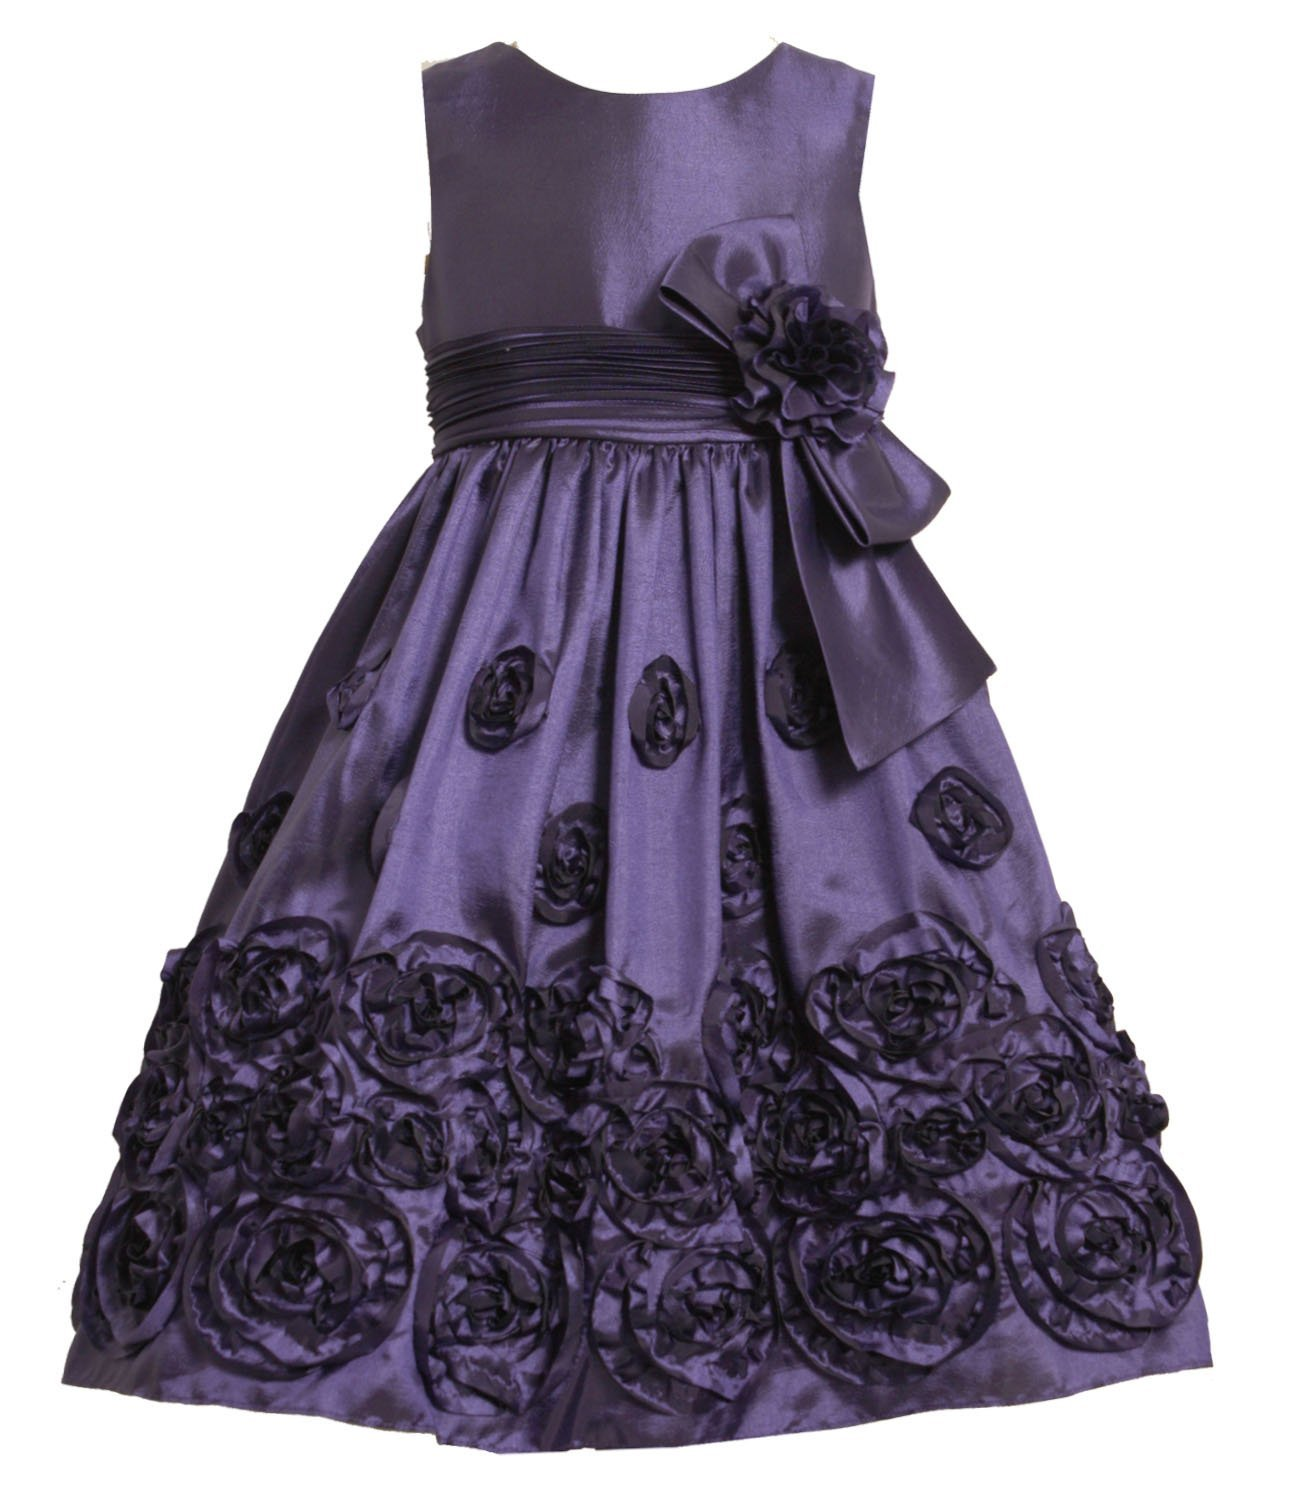 Wholesale Children Party Dresses! - Adverts - Nigeria